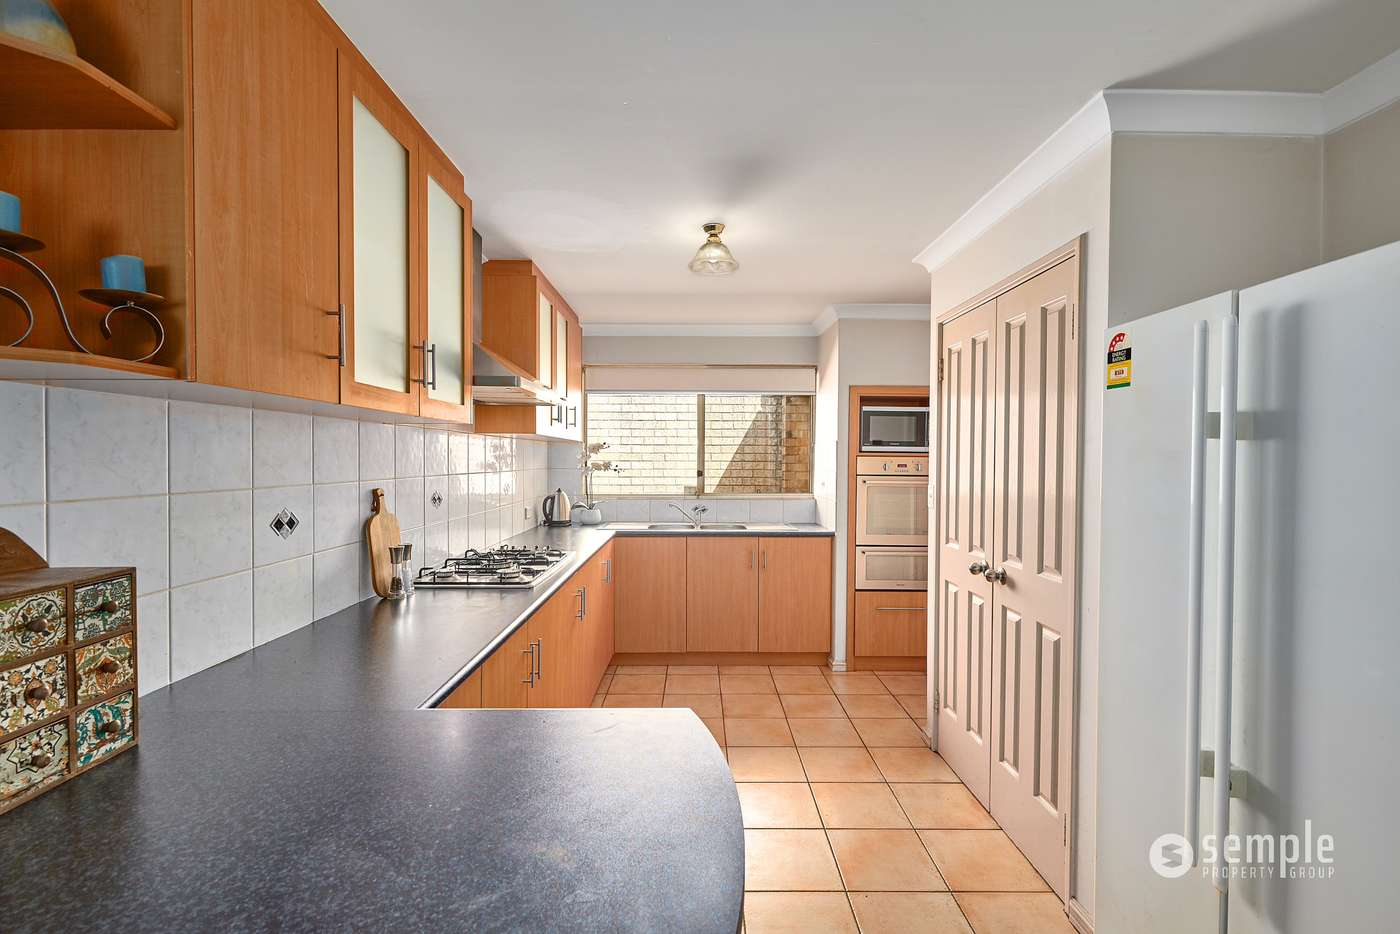 Sixth view of Homely house listing, 11 Possum Glade, Beeliar WA 6164